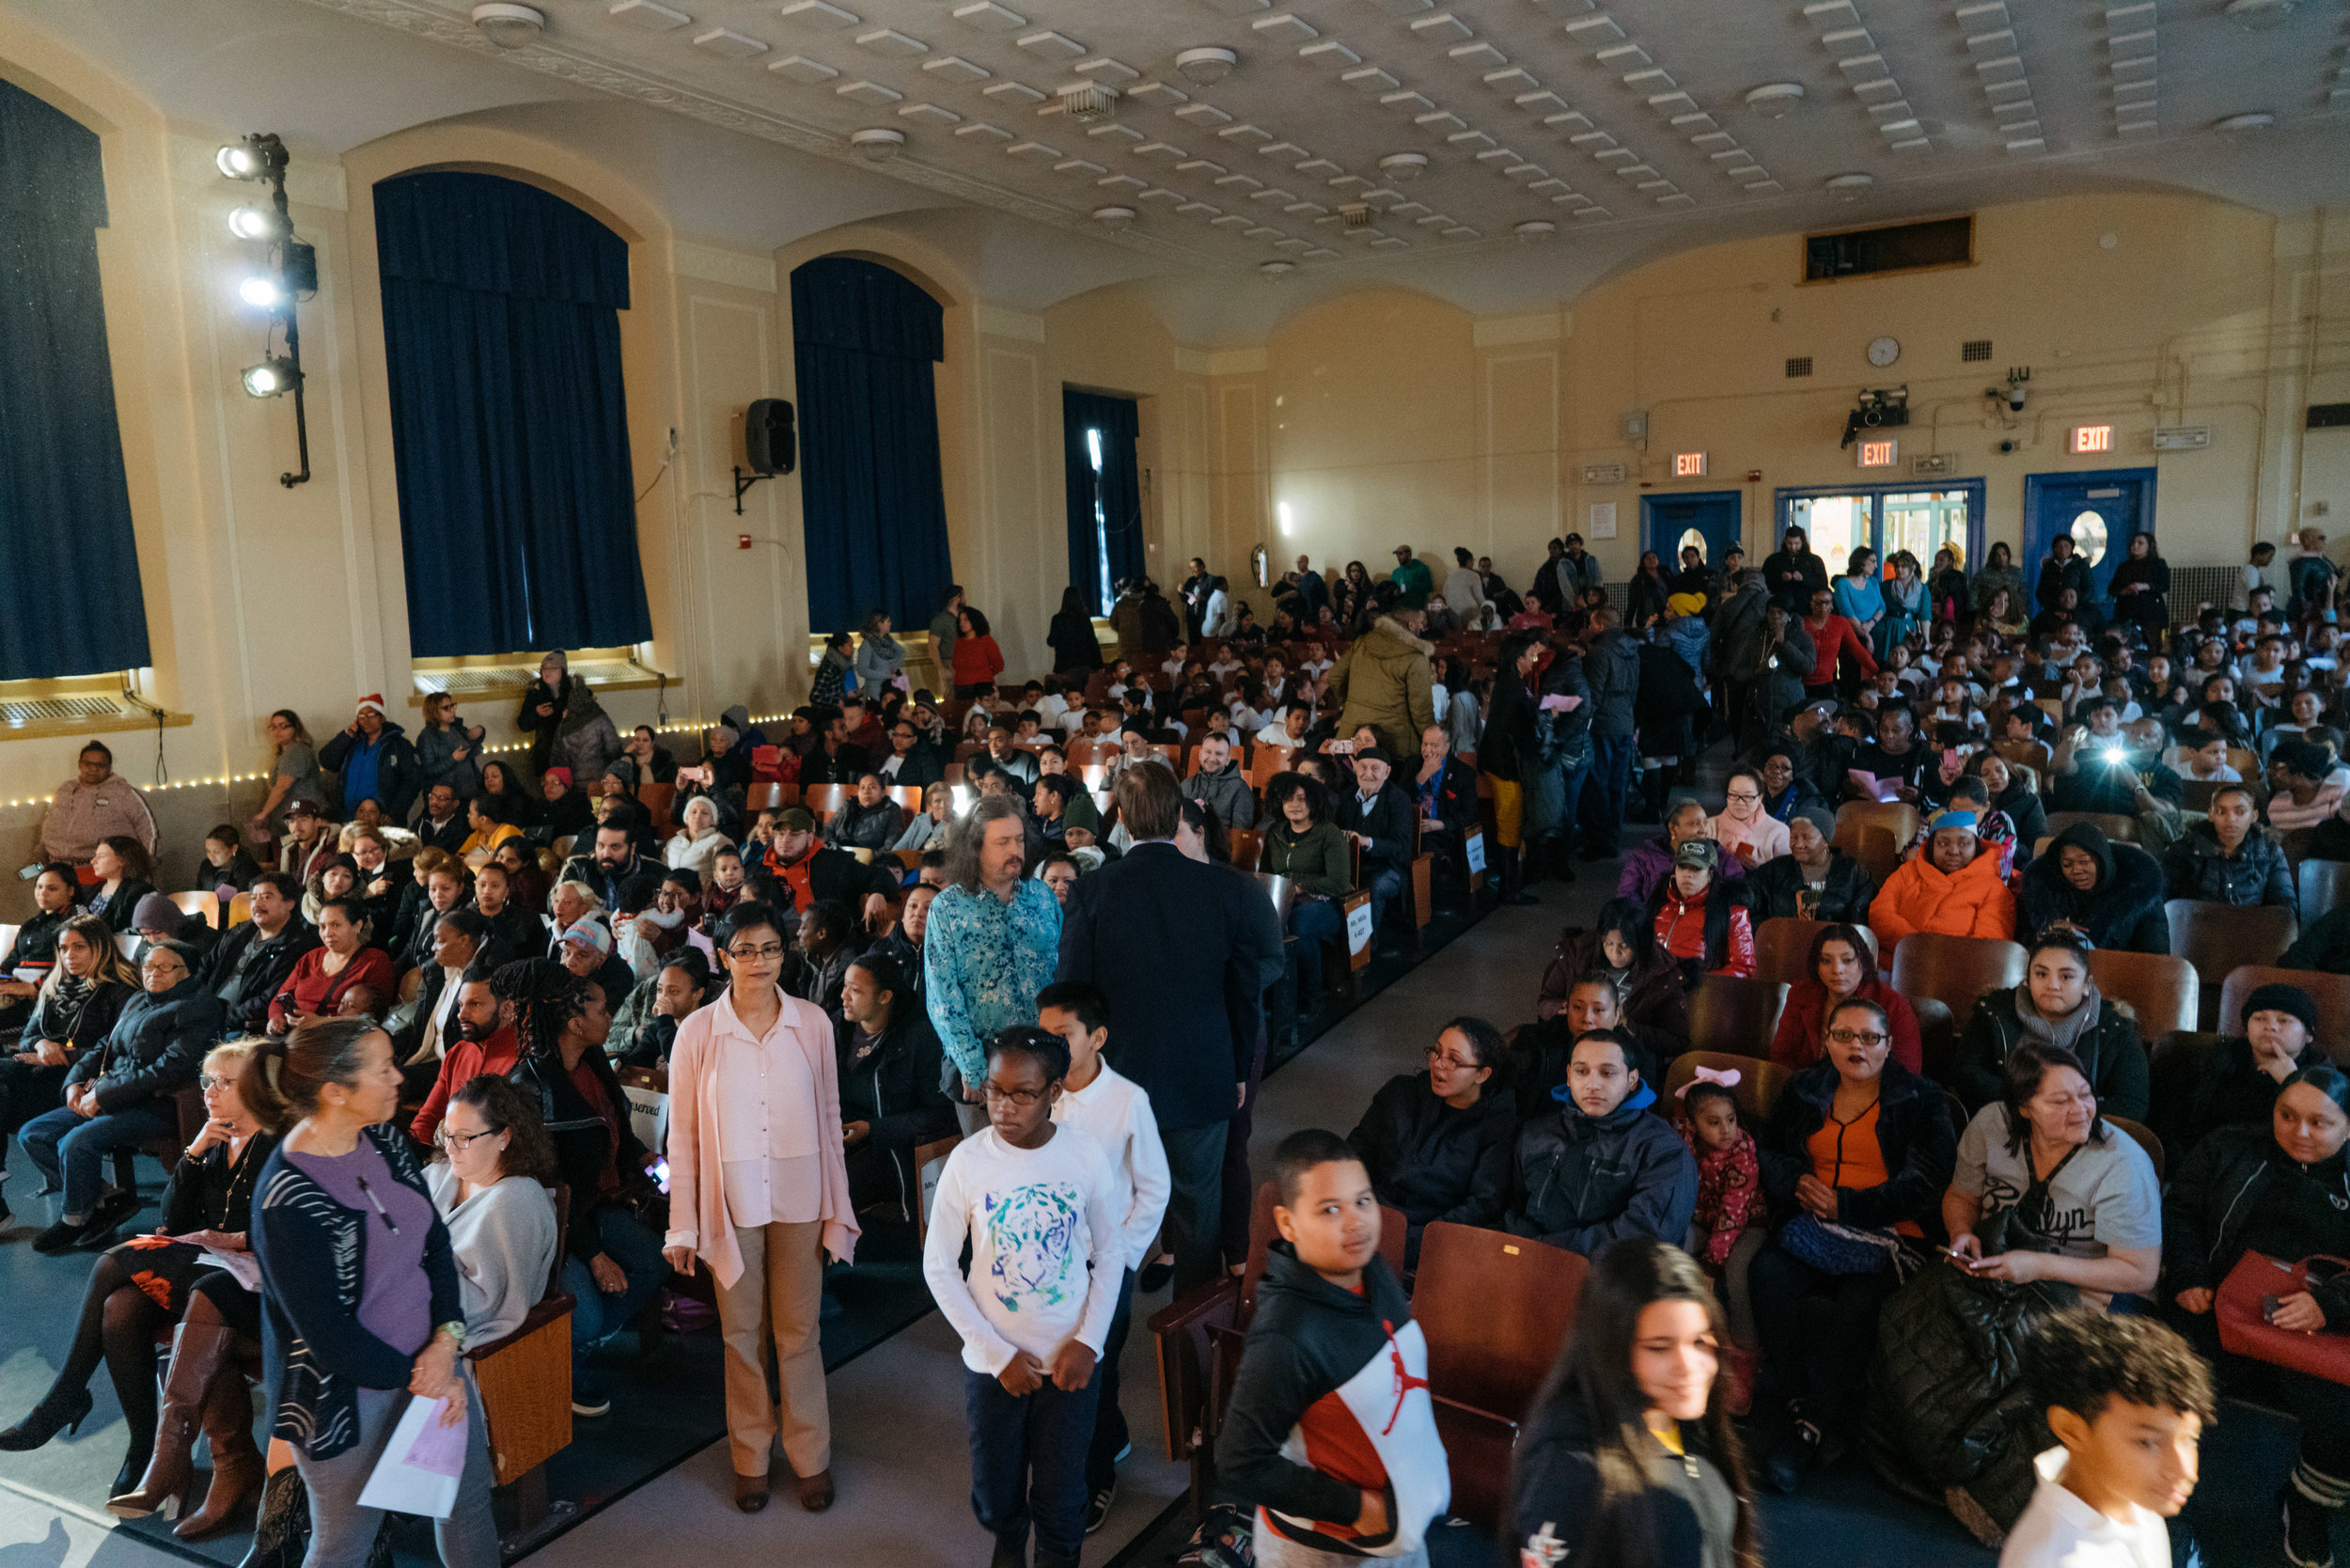 A jam-packed P.S. 91X auditorium awaited gleefully with anticipation as performers took to the stage.